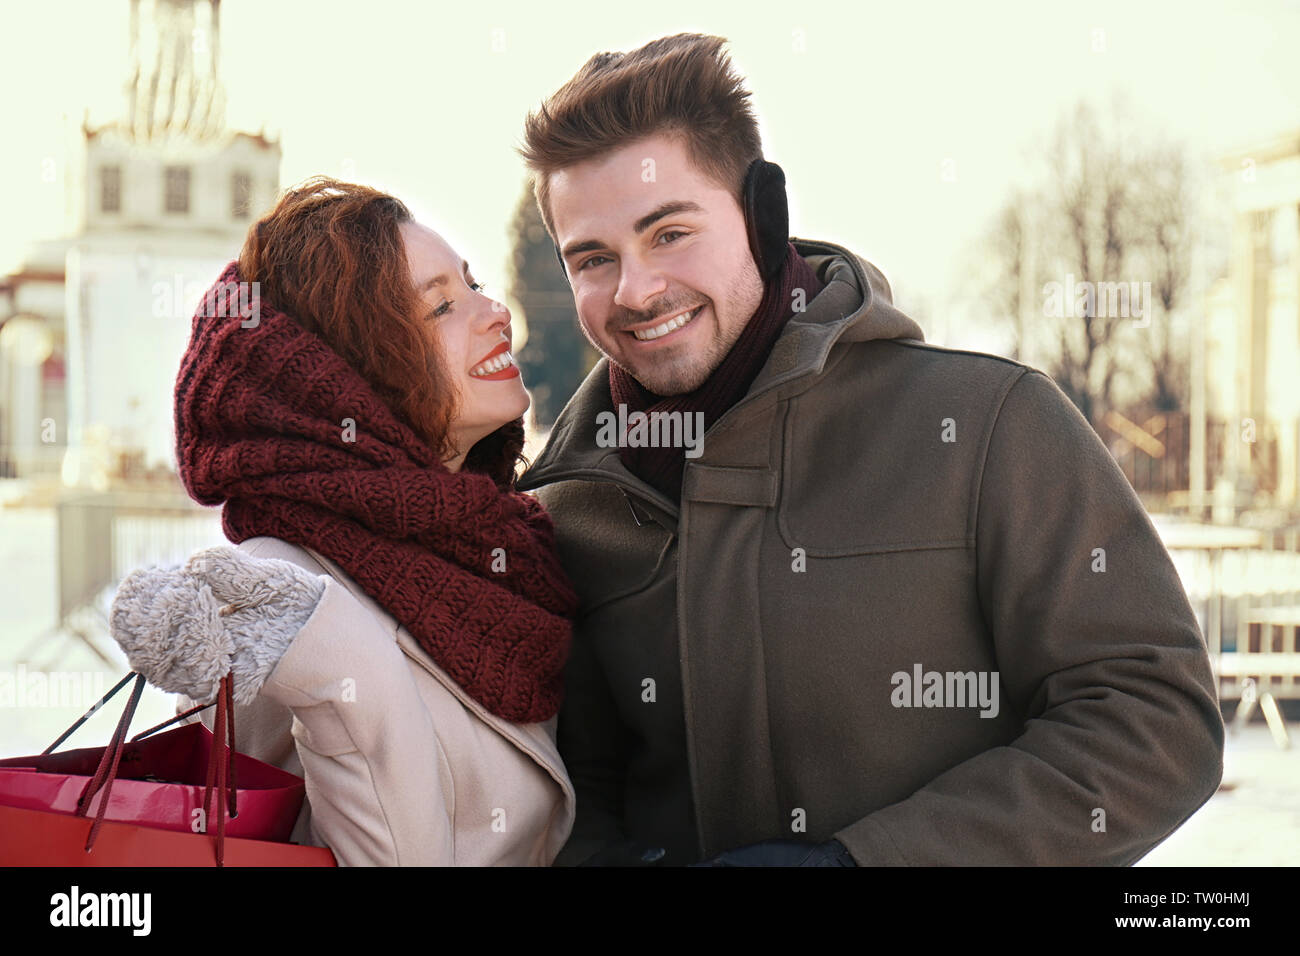 Woman and man with shopping bags on Christmas market - Stock Image